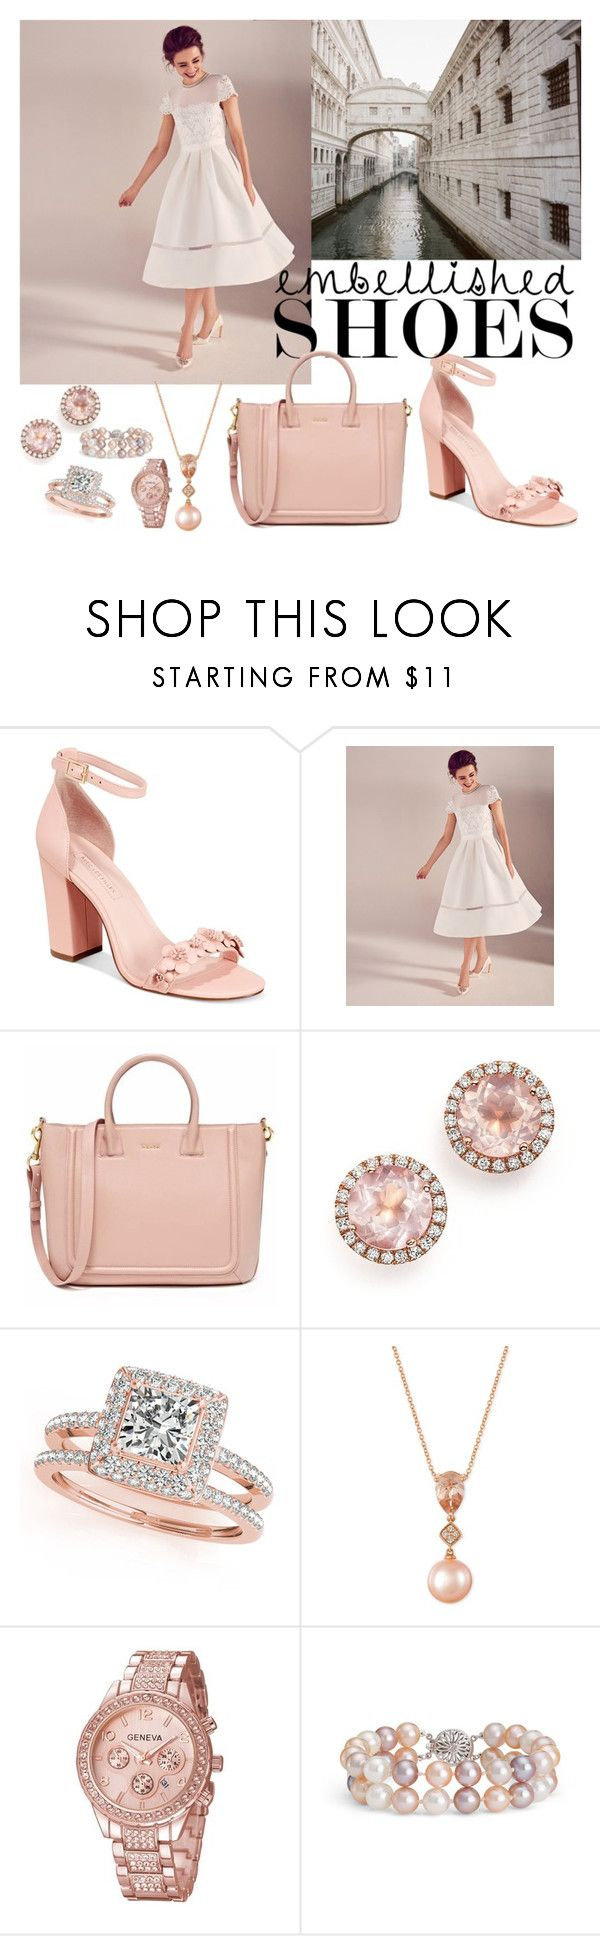 """Magic Slippers: Embellished Shoes"" by beakragh on Polyvore featuring Avec Les Filles, Ted Baker, Dana Rebecca Designs, Allurez, LE VIAN, Blue Nile, tedbaker, embellishedshoes, rosegoldjewelry and ss17"